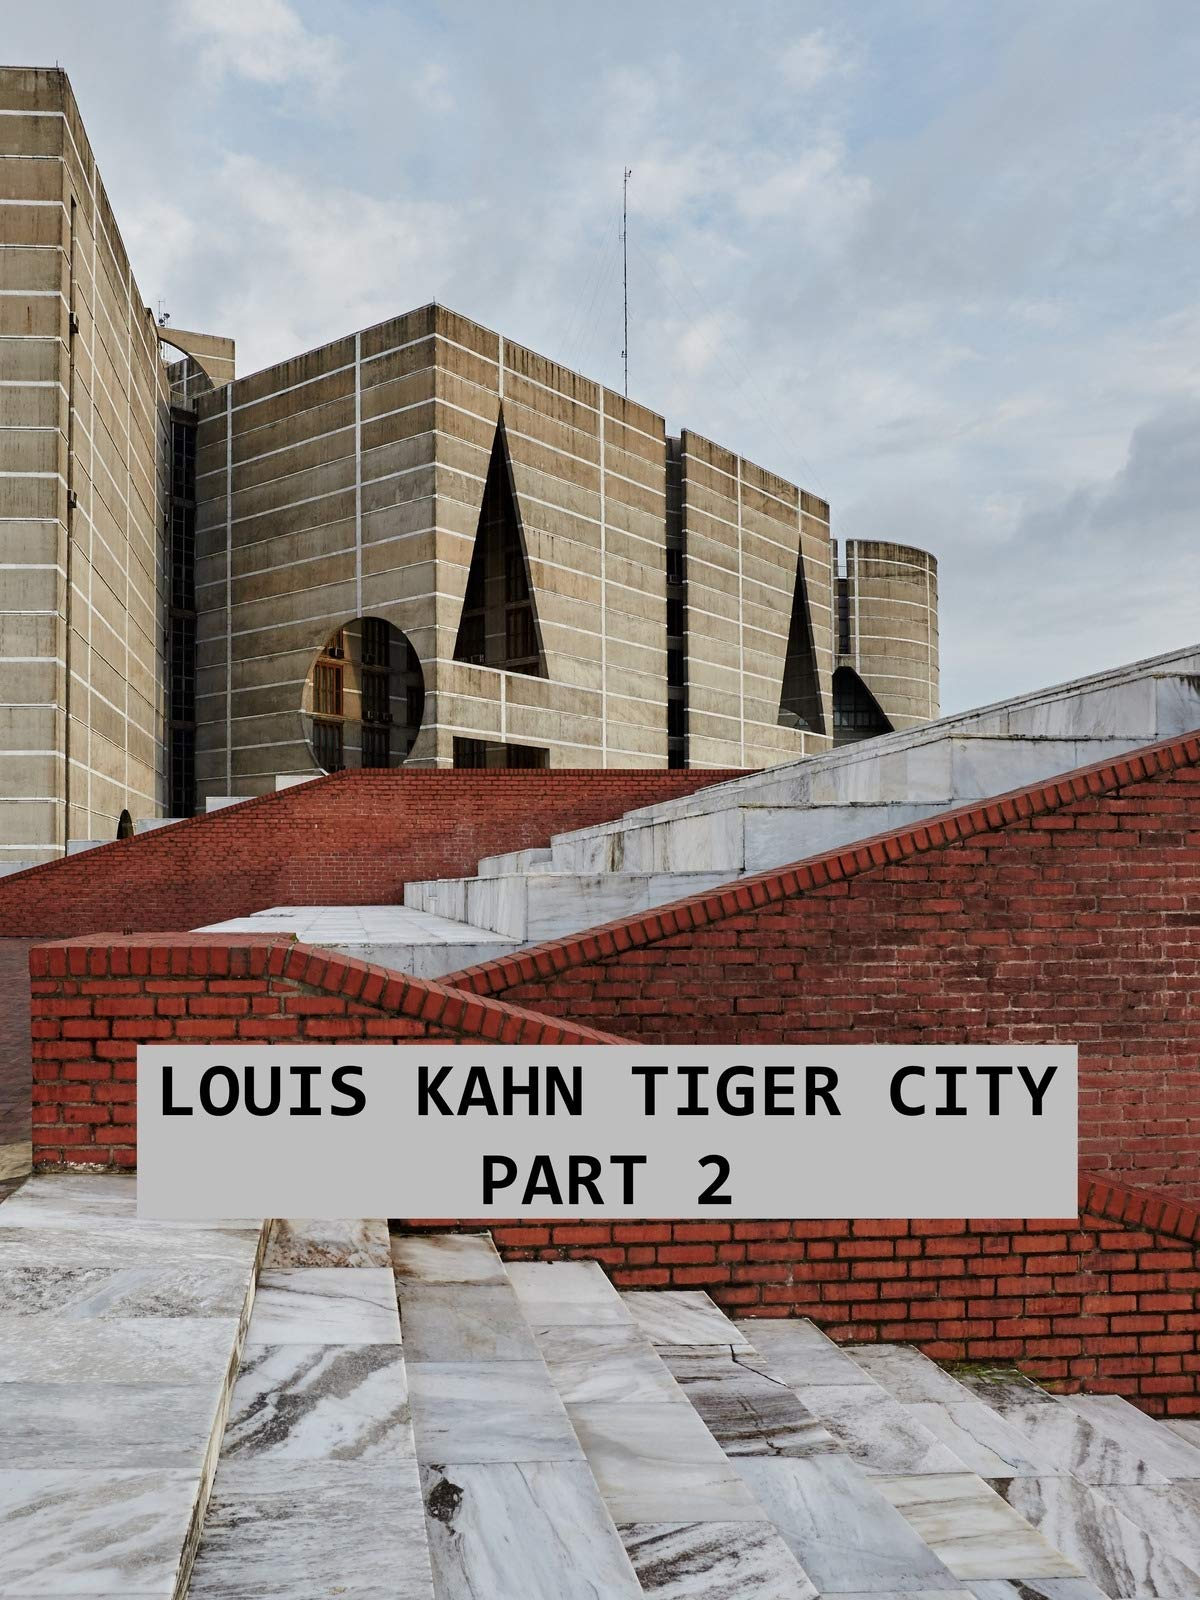 Louis Kahn Tiger City Part 2